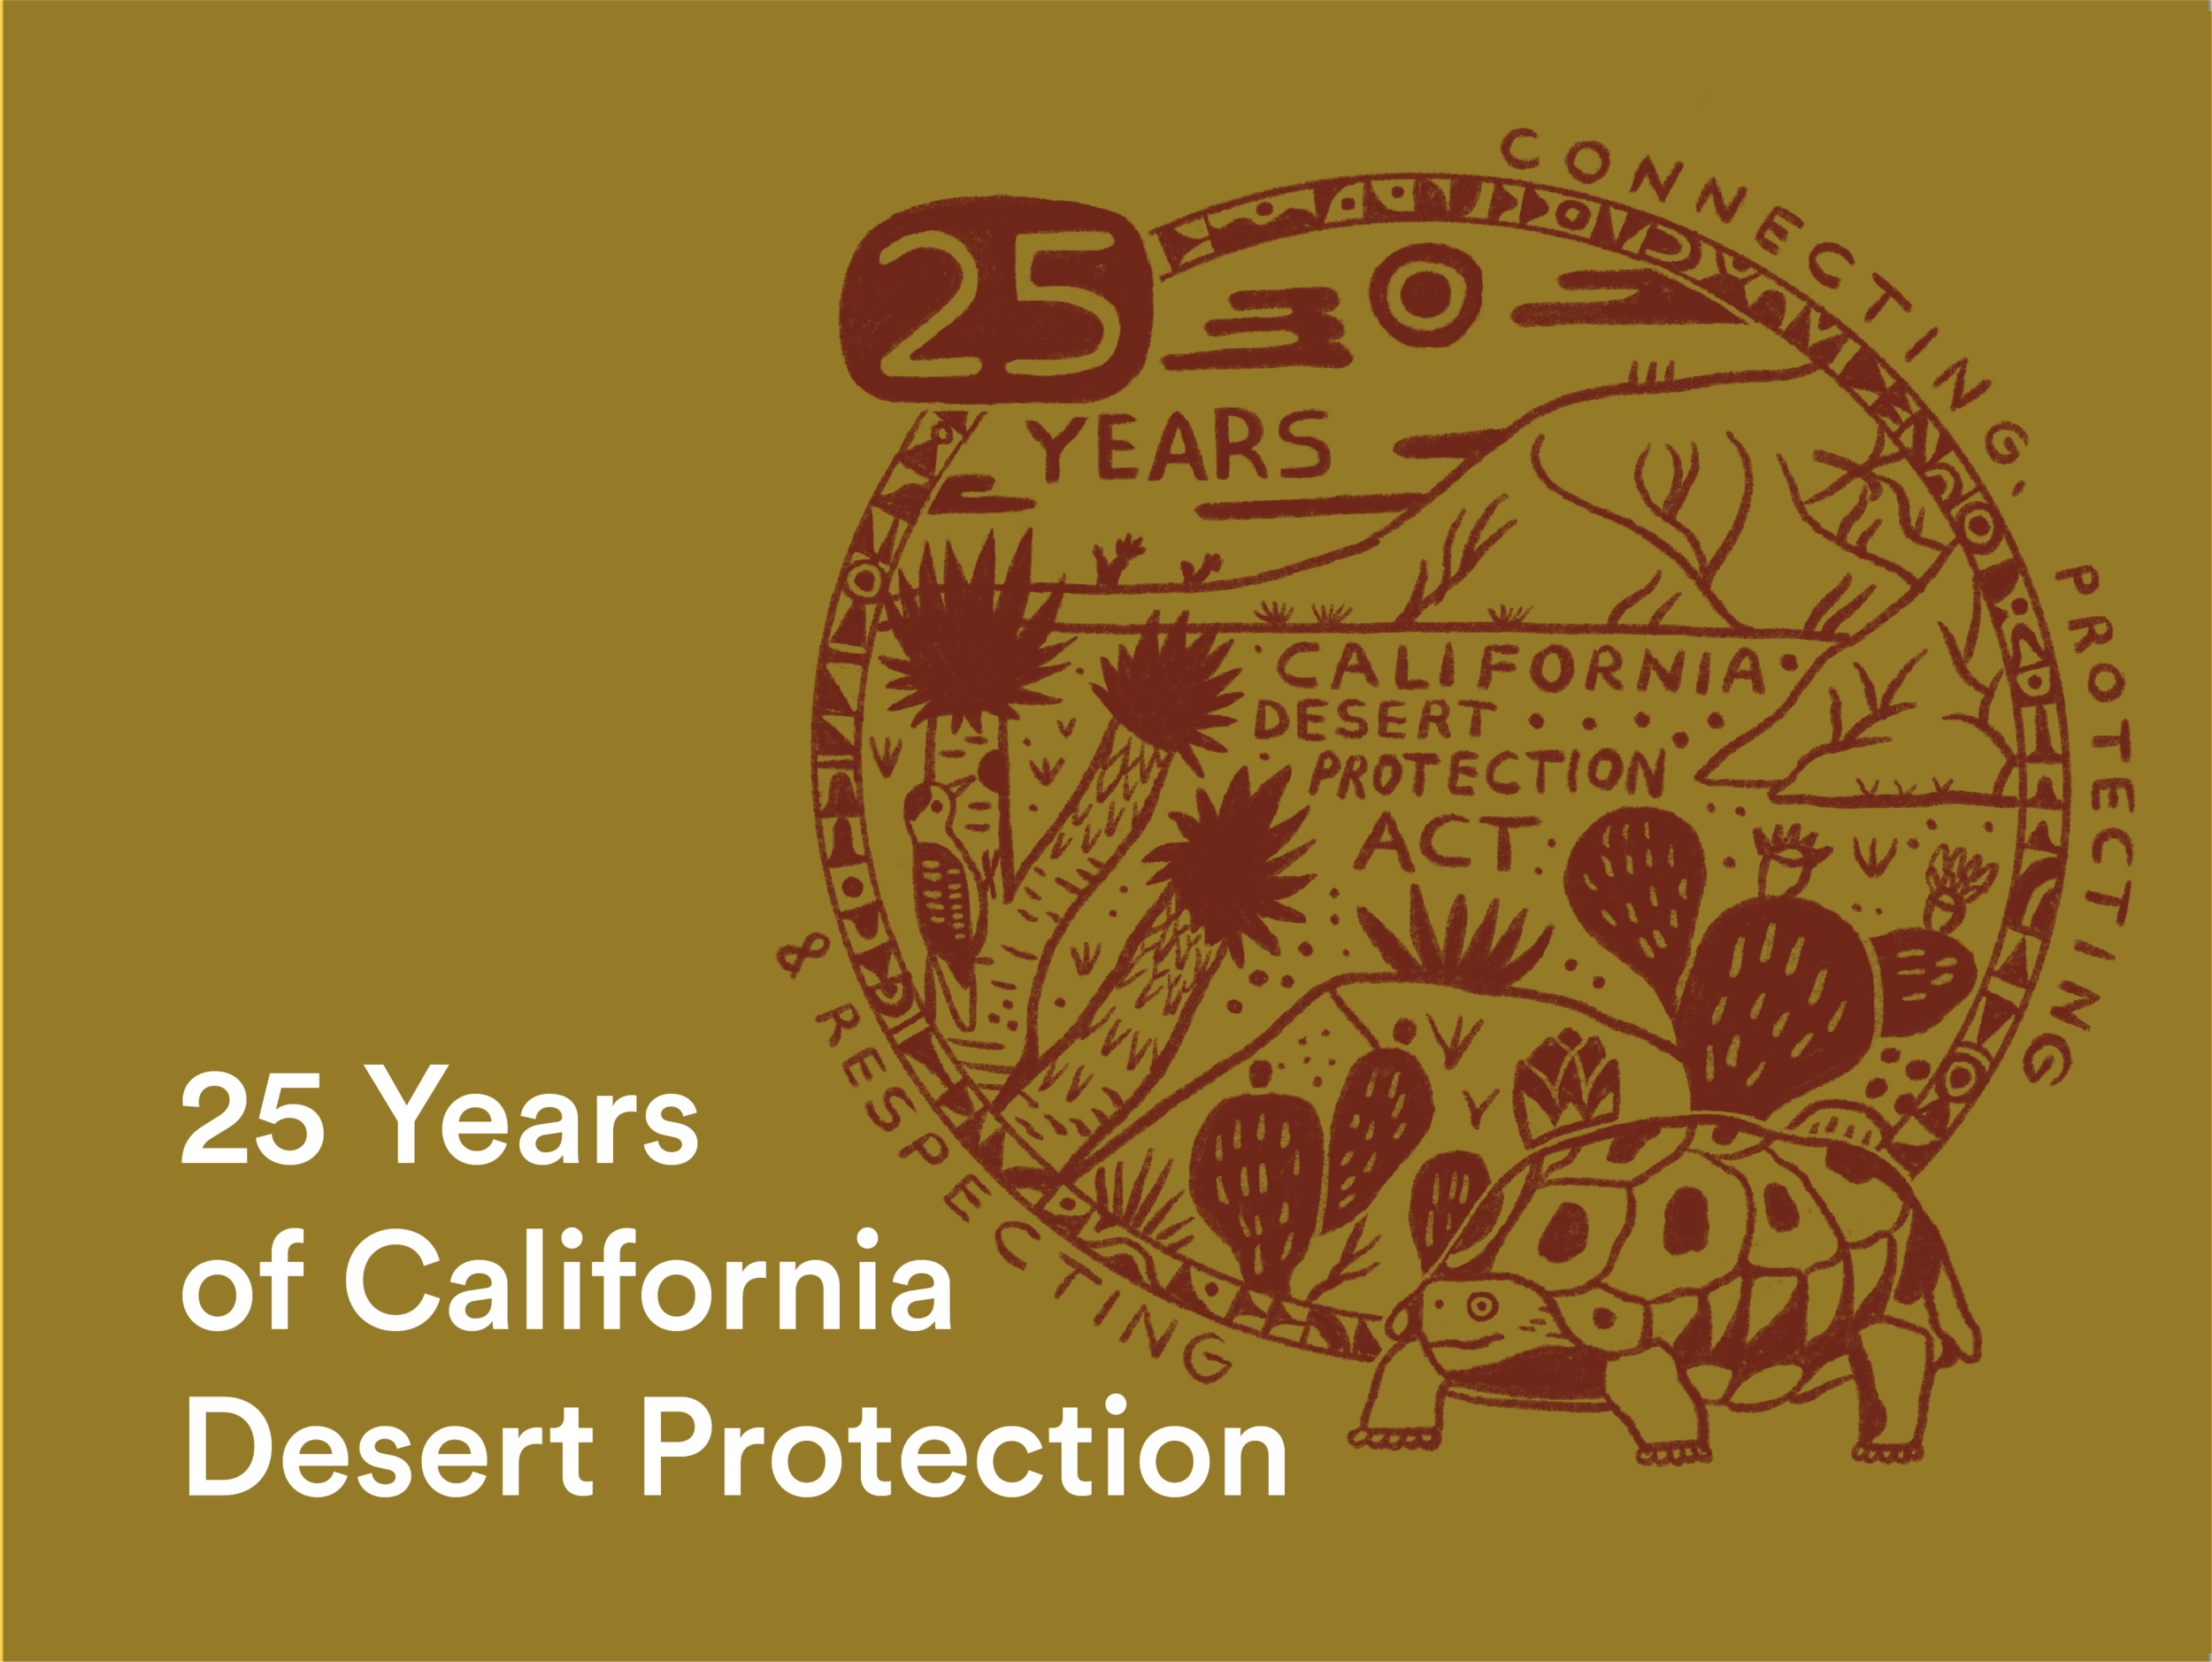 COALITION - Supported conservation advocates to develop a series of events, communication materials and statements of local support celebrating the 25th anniversary of the California Desert Protection Act, which catalyzed legislative protections